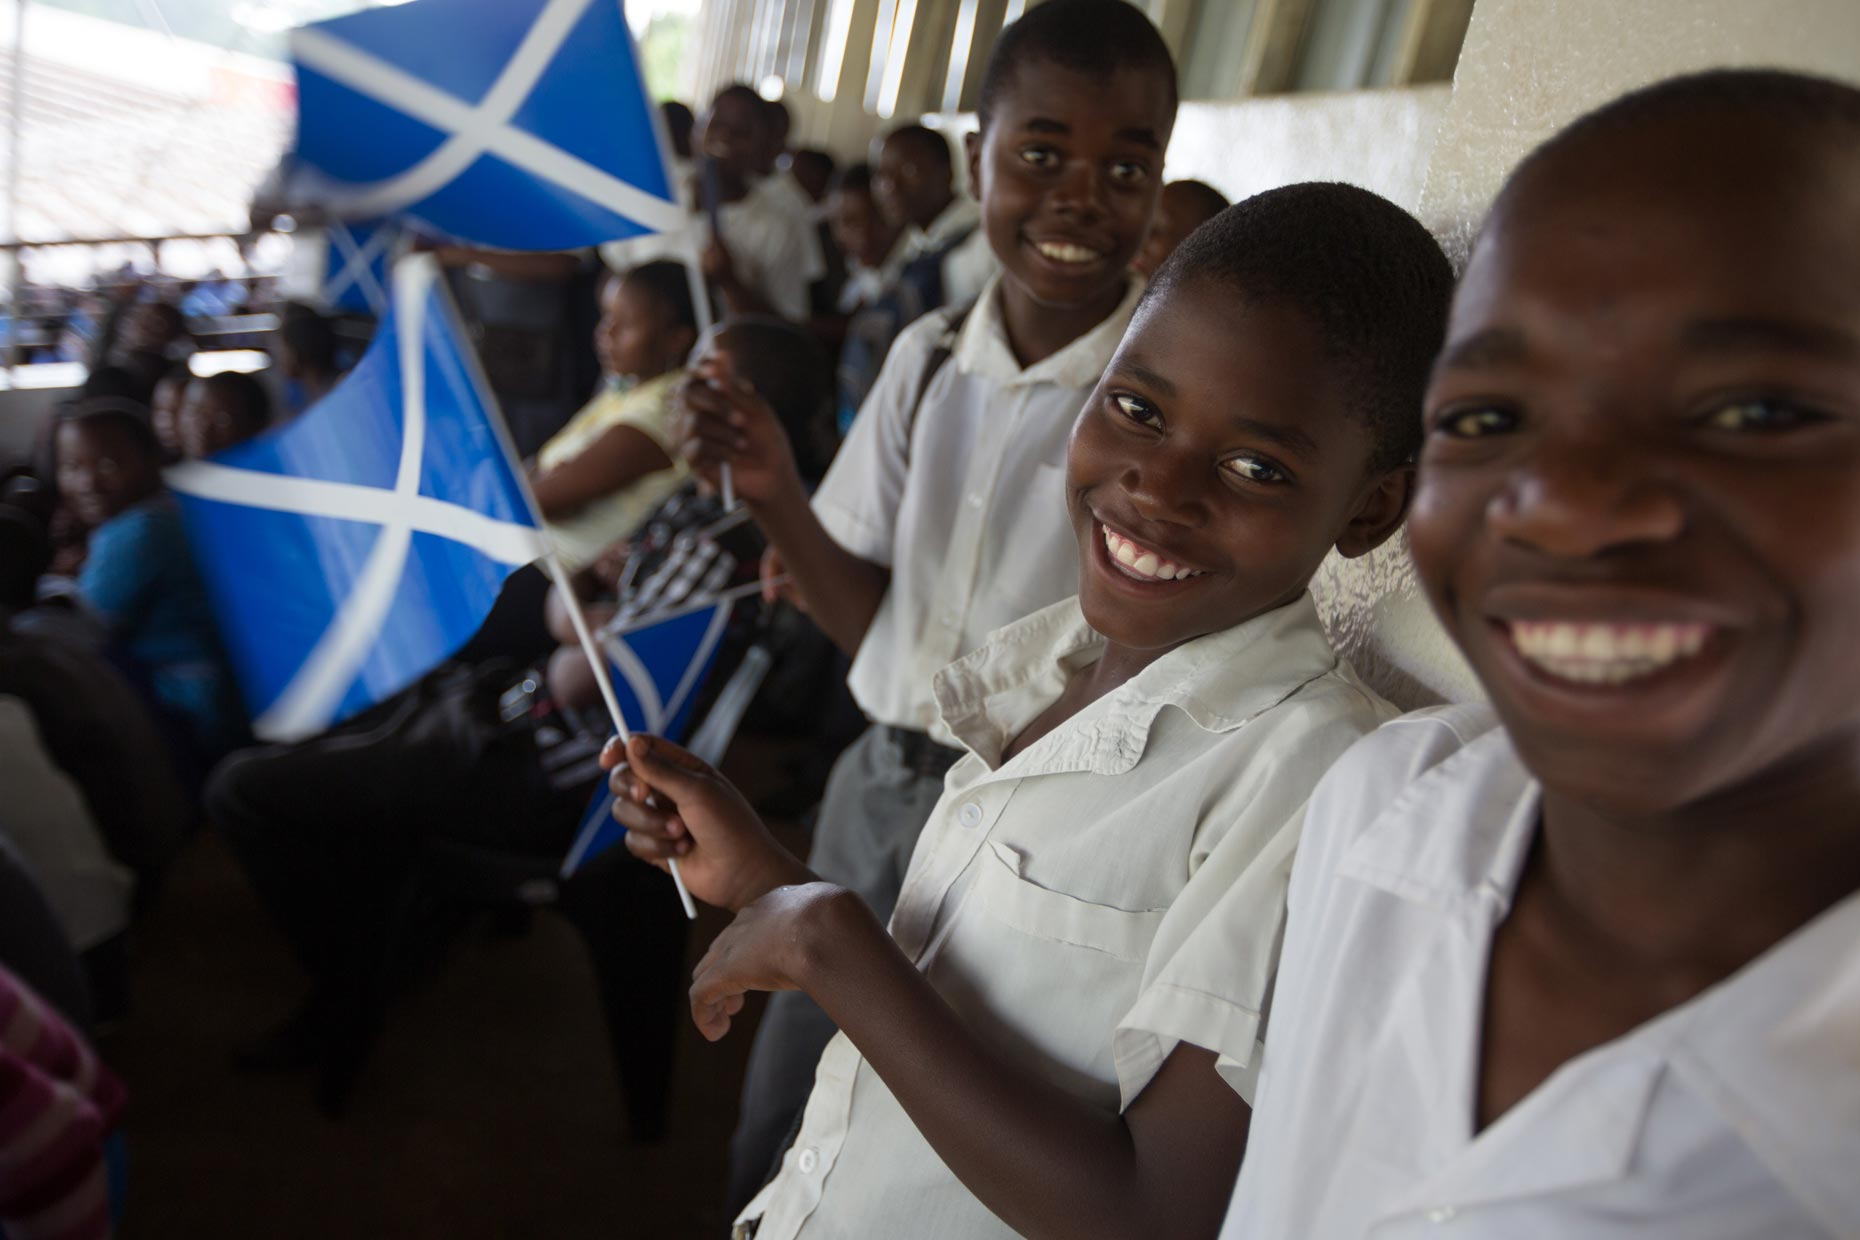 Malawi Children with Scotland flag, by Scottish photographer